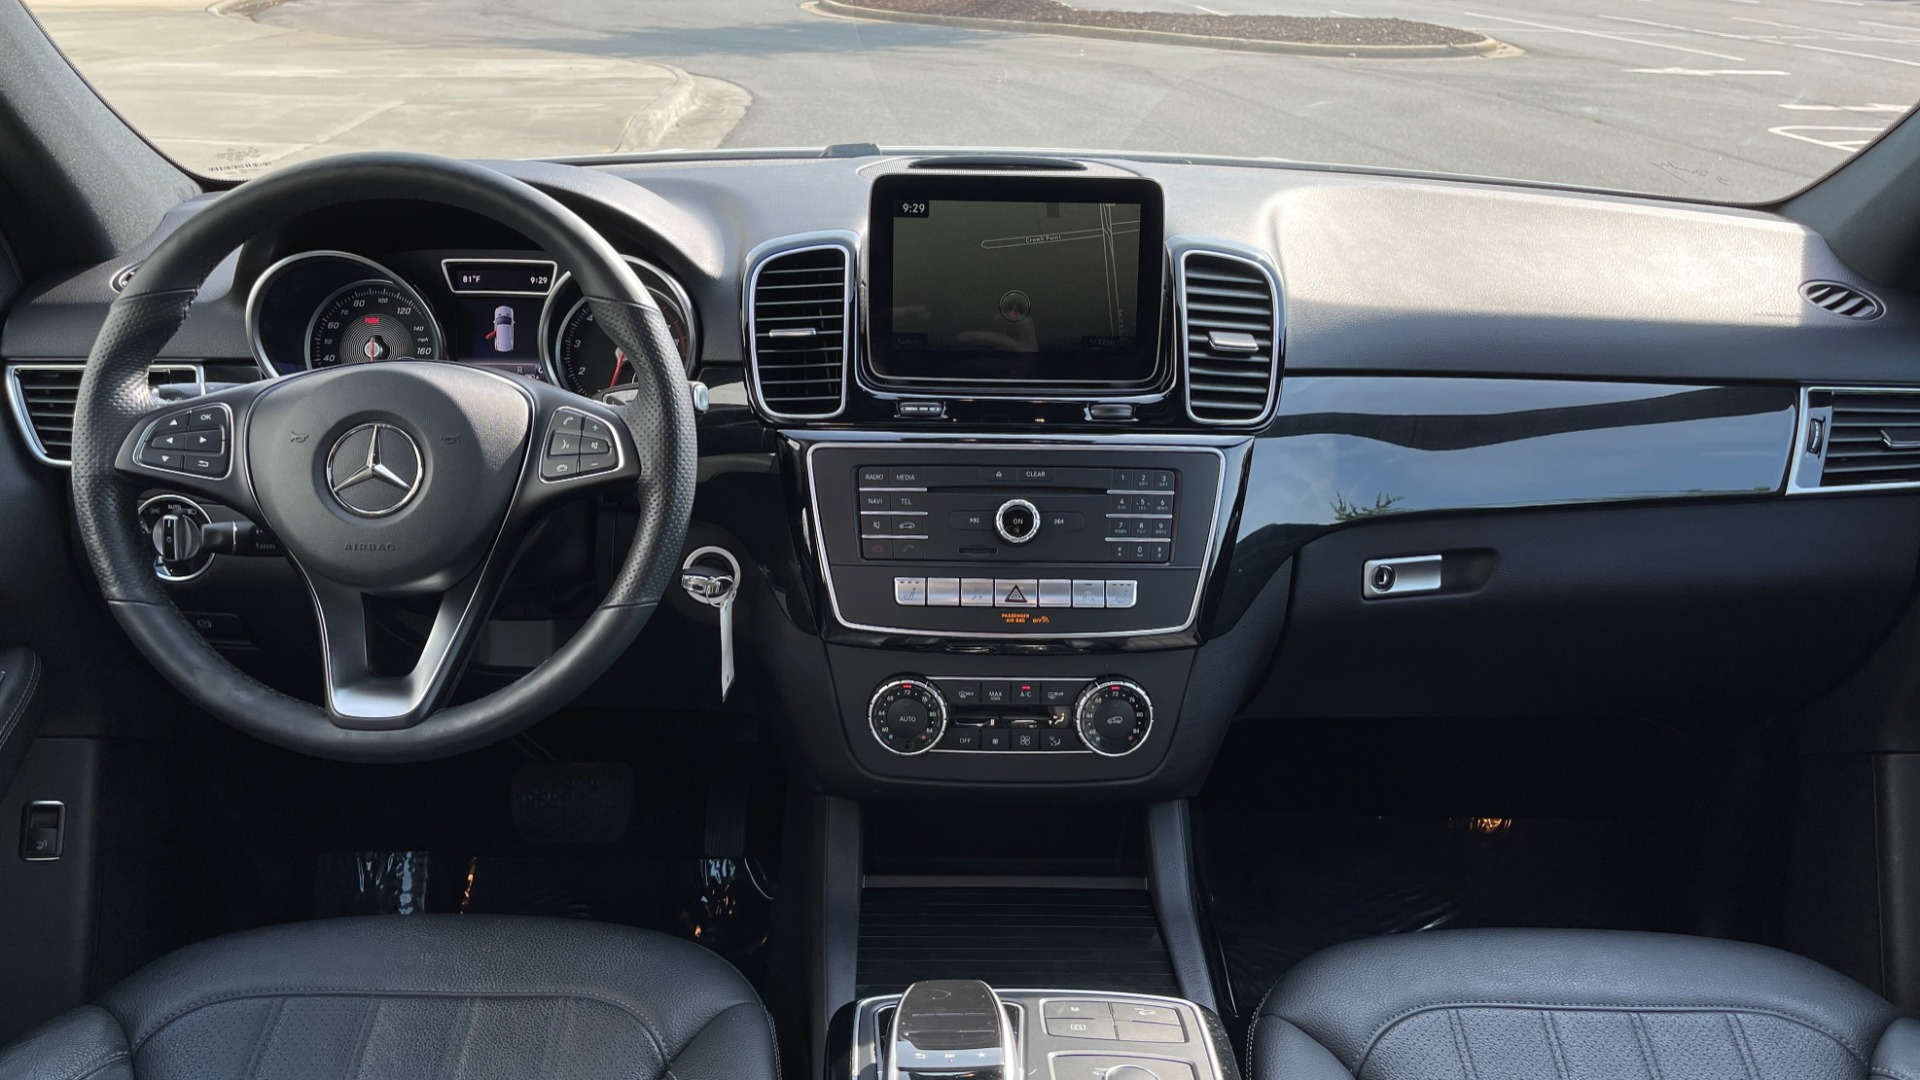 Used 2018 Mercedes-Benz GLE 350 4MATIC PREMIUM / NAV / SUNROOF / HTD STS / TRAILER HITCH / REARVIEW for sale $36,295 at Formula Imports in Charlotte NC 28227 59